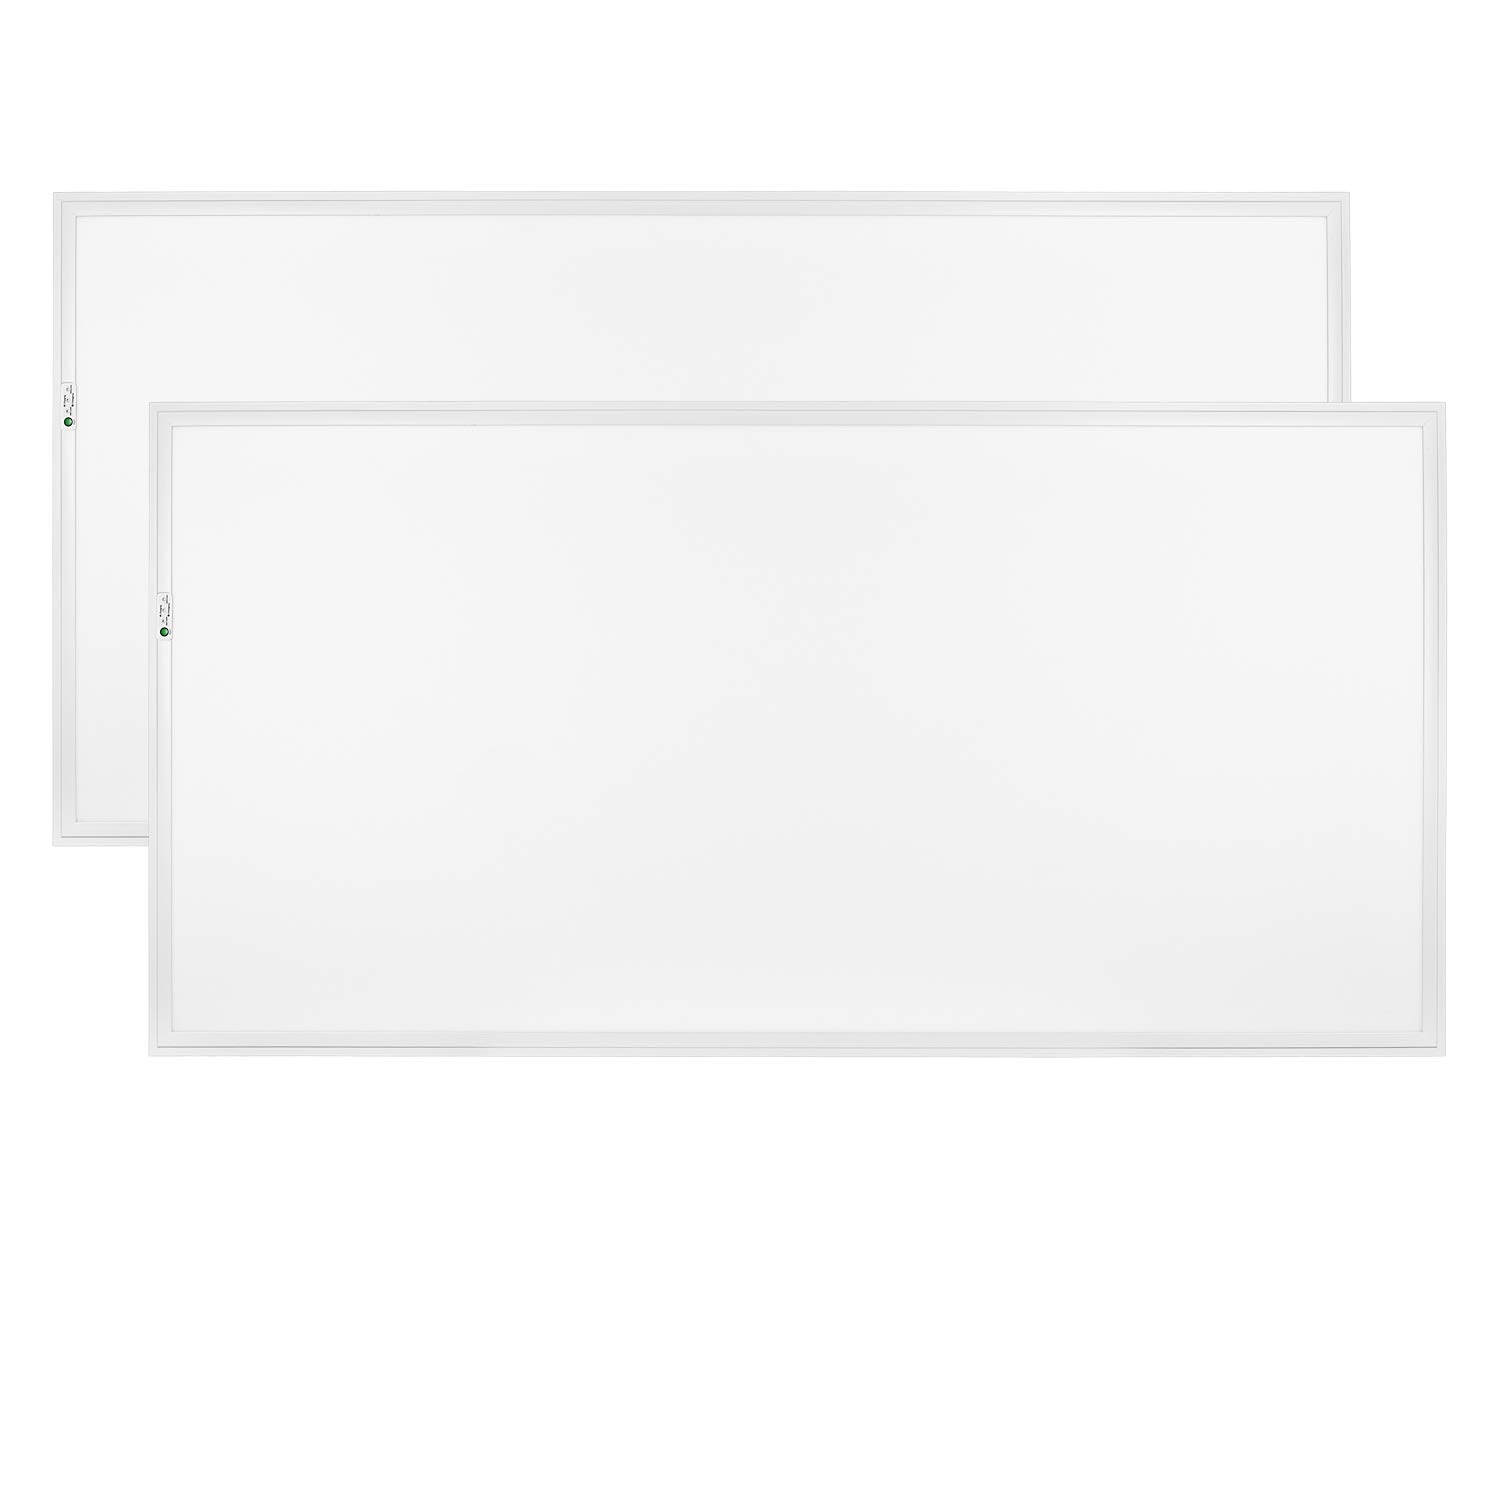 Luxrite 2x4 LED Flat Panel Light with Emergency Battery Backup, 60W 6500K Daylight White, 0-10V Dimmable, 6960 Lumens, LED Drop Ceiling Lights, 100-277V, UL Listed, Ultra Thin Edge Lit - 2 Pack